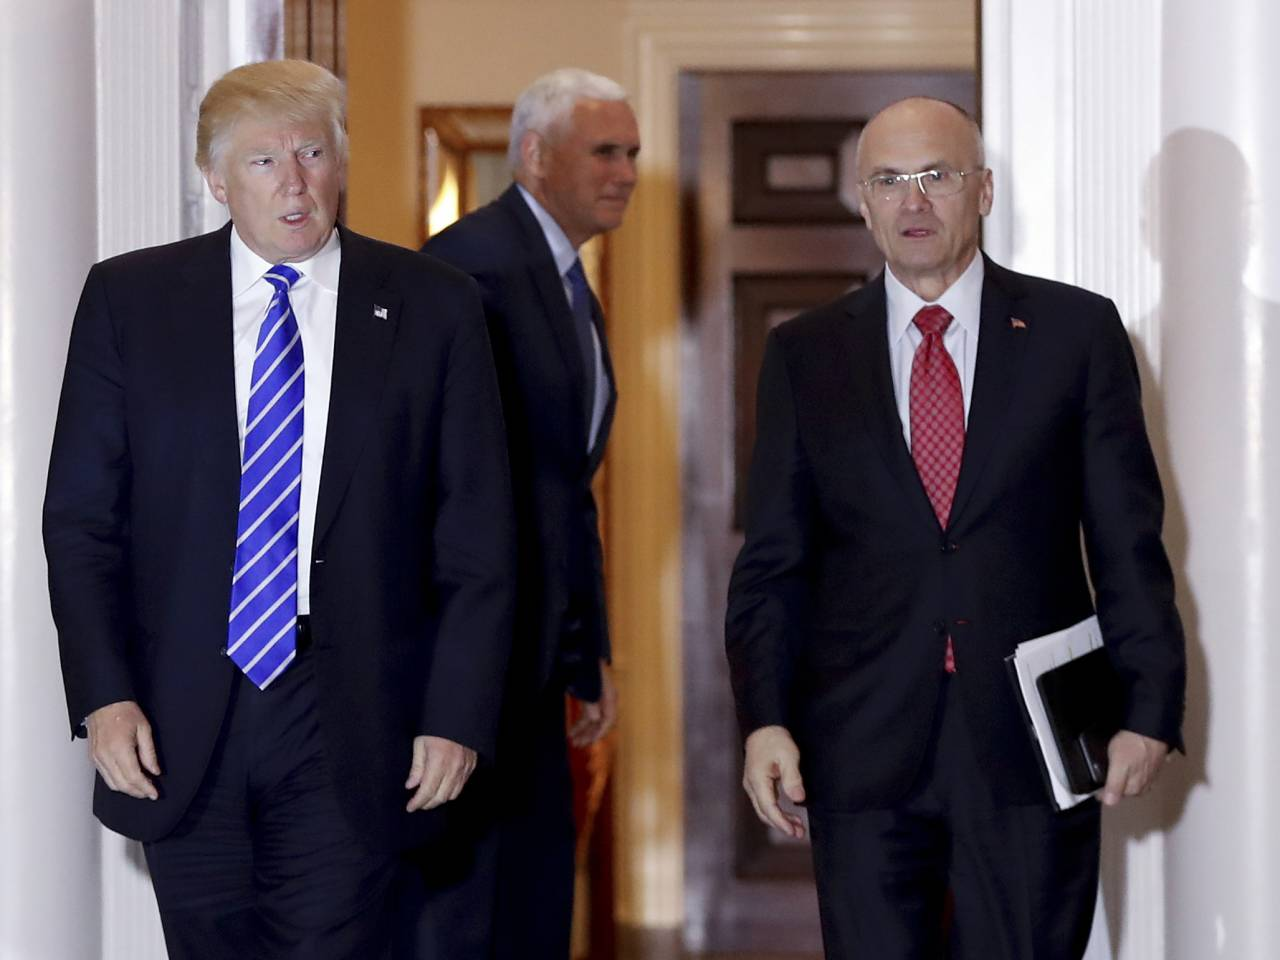 Andrew Puzder's nomination as Trump's labor secretary near collapse as senators waver